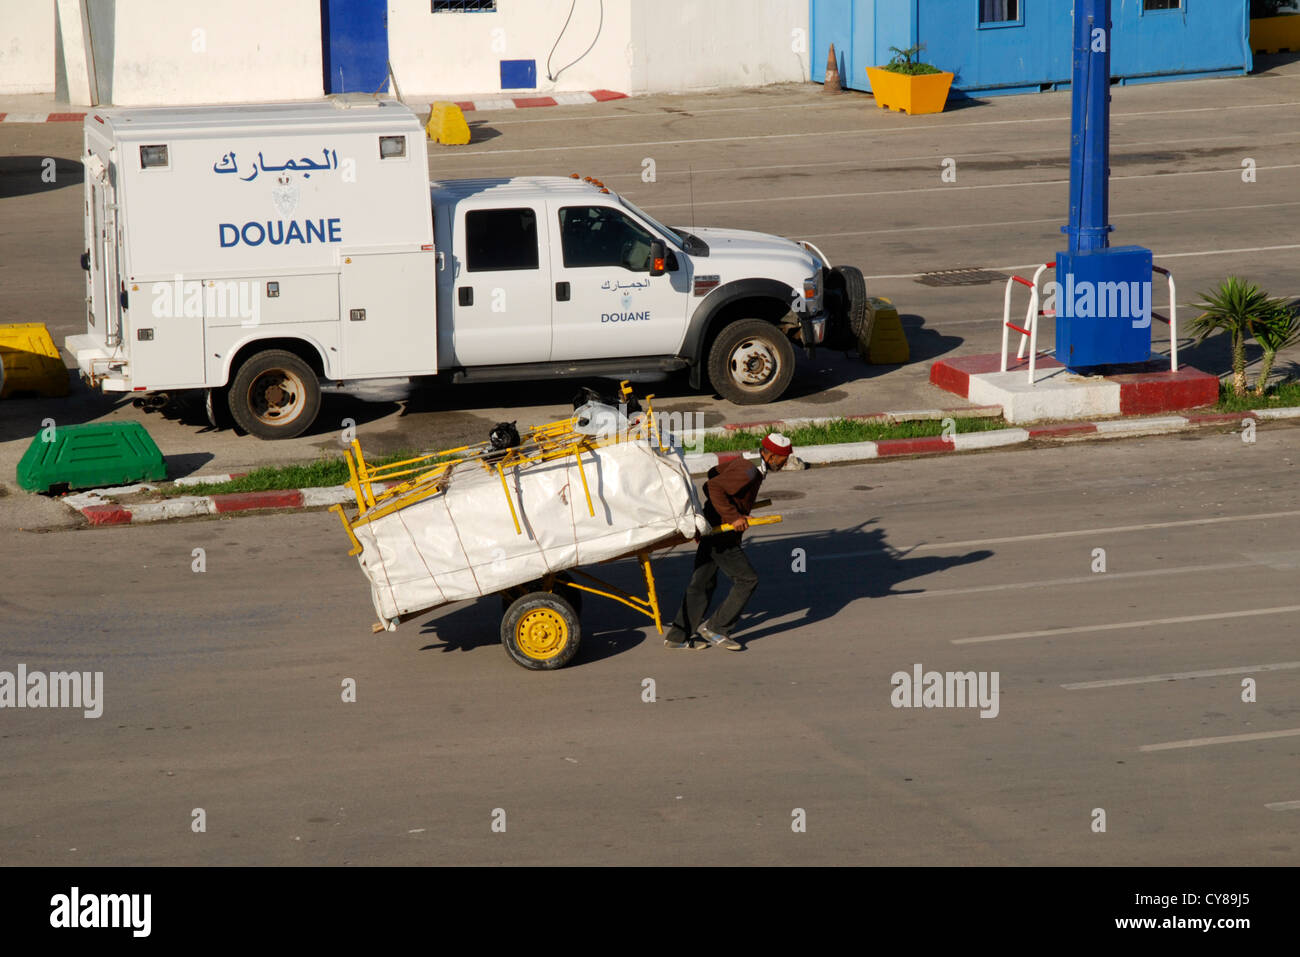 Porter Pulling Hand Trolley with Customs Van in Background. Portside view, Tangier, Morocco - Stock Image